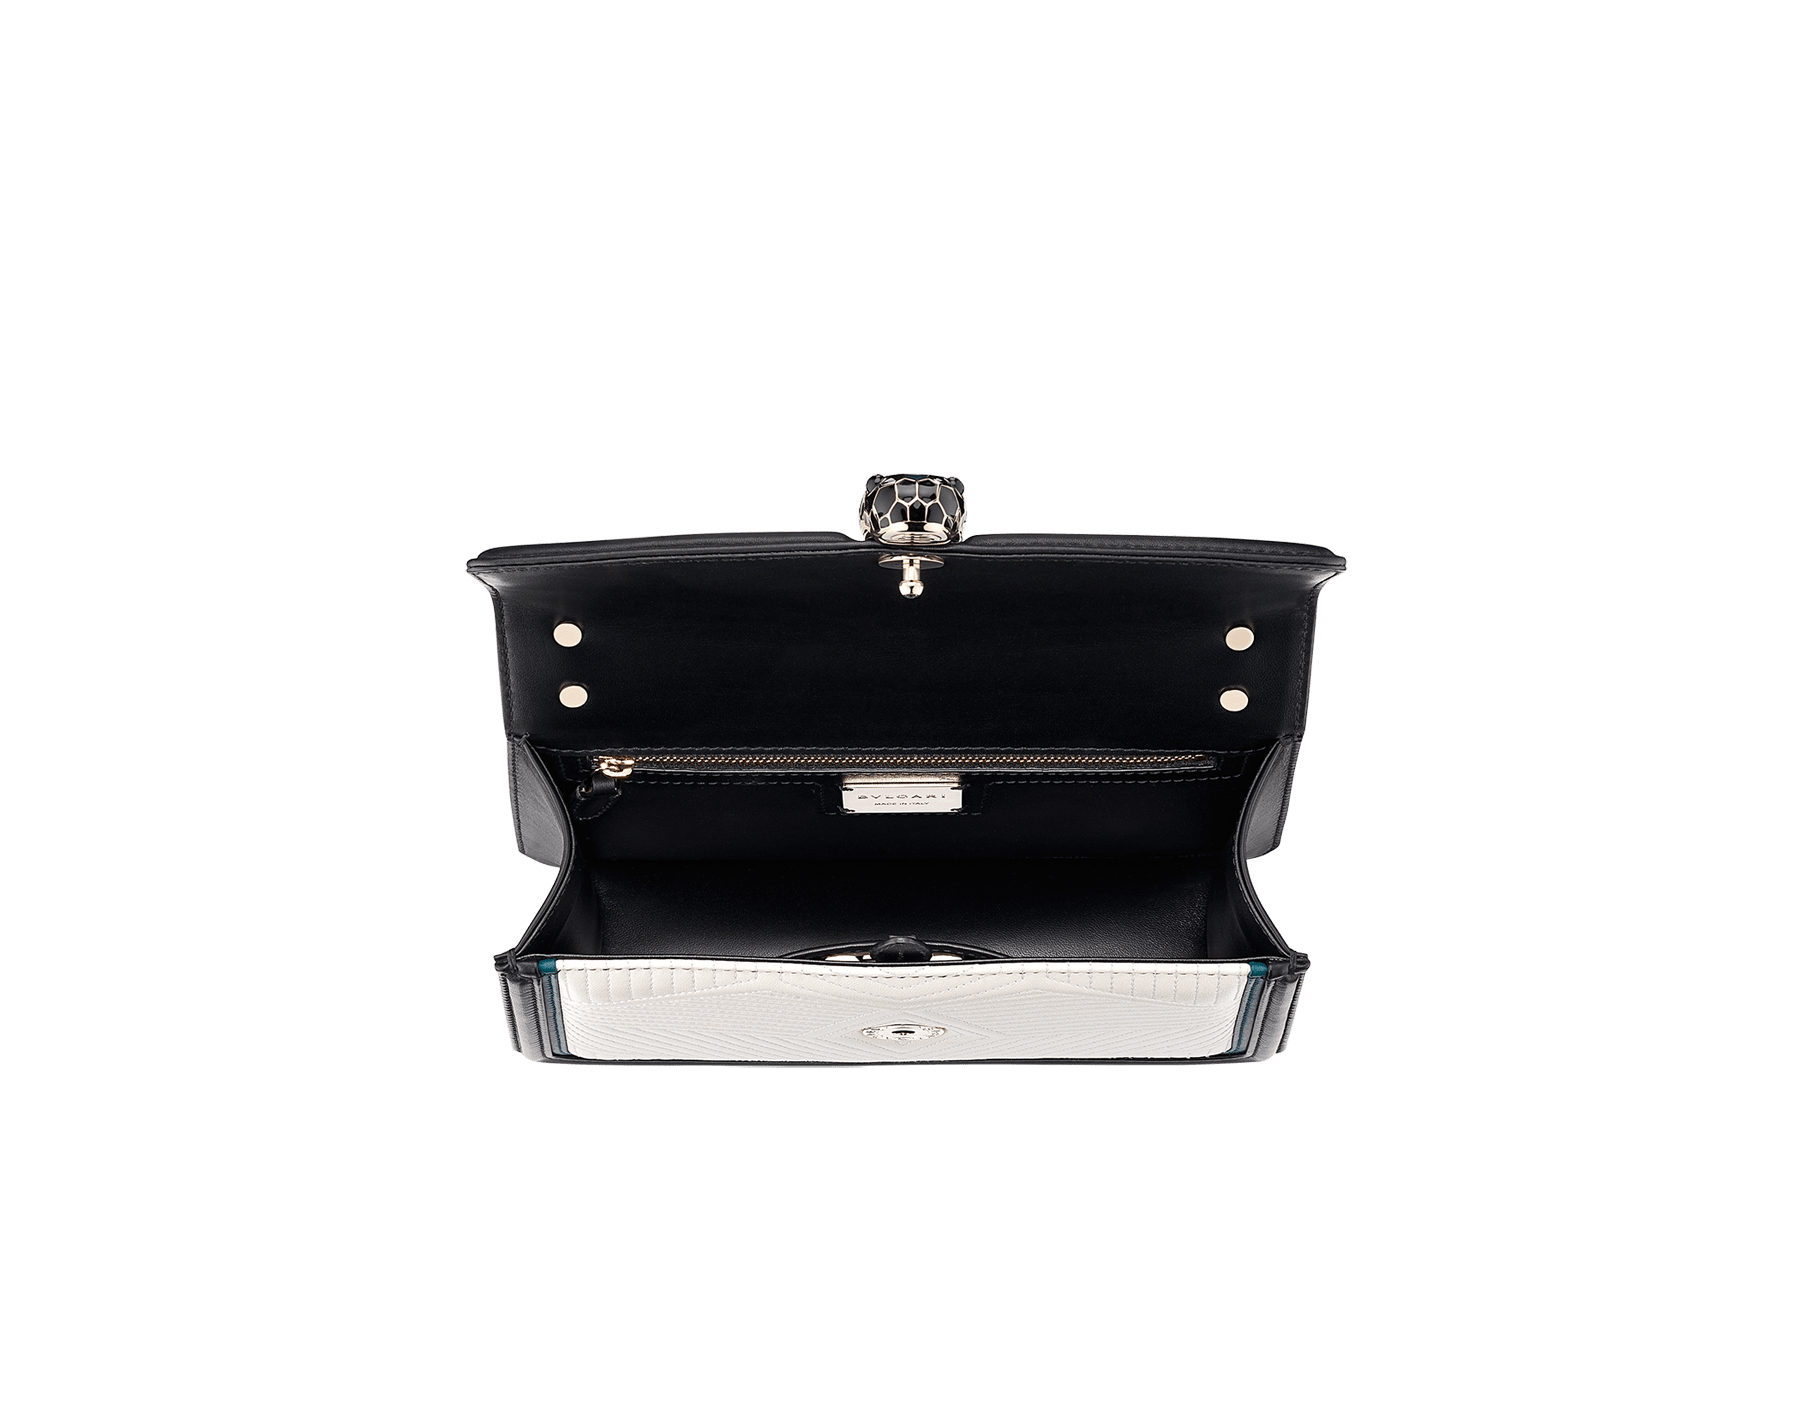 Serpenti Diamond Blast shoulder bag in white agate quilted nappa leather body and deep jade and black calf leather frames. Snakehead closure in light gold plated brass decorated with deep jade and black enamel, and black onyx eyes. 287970 image 4